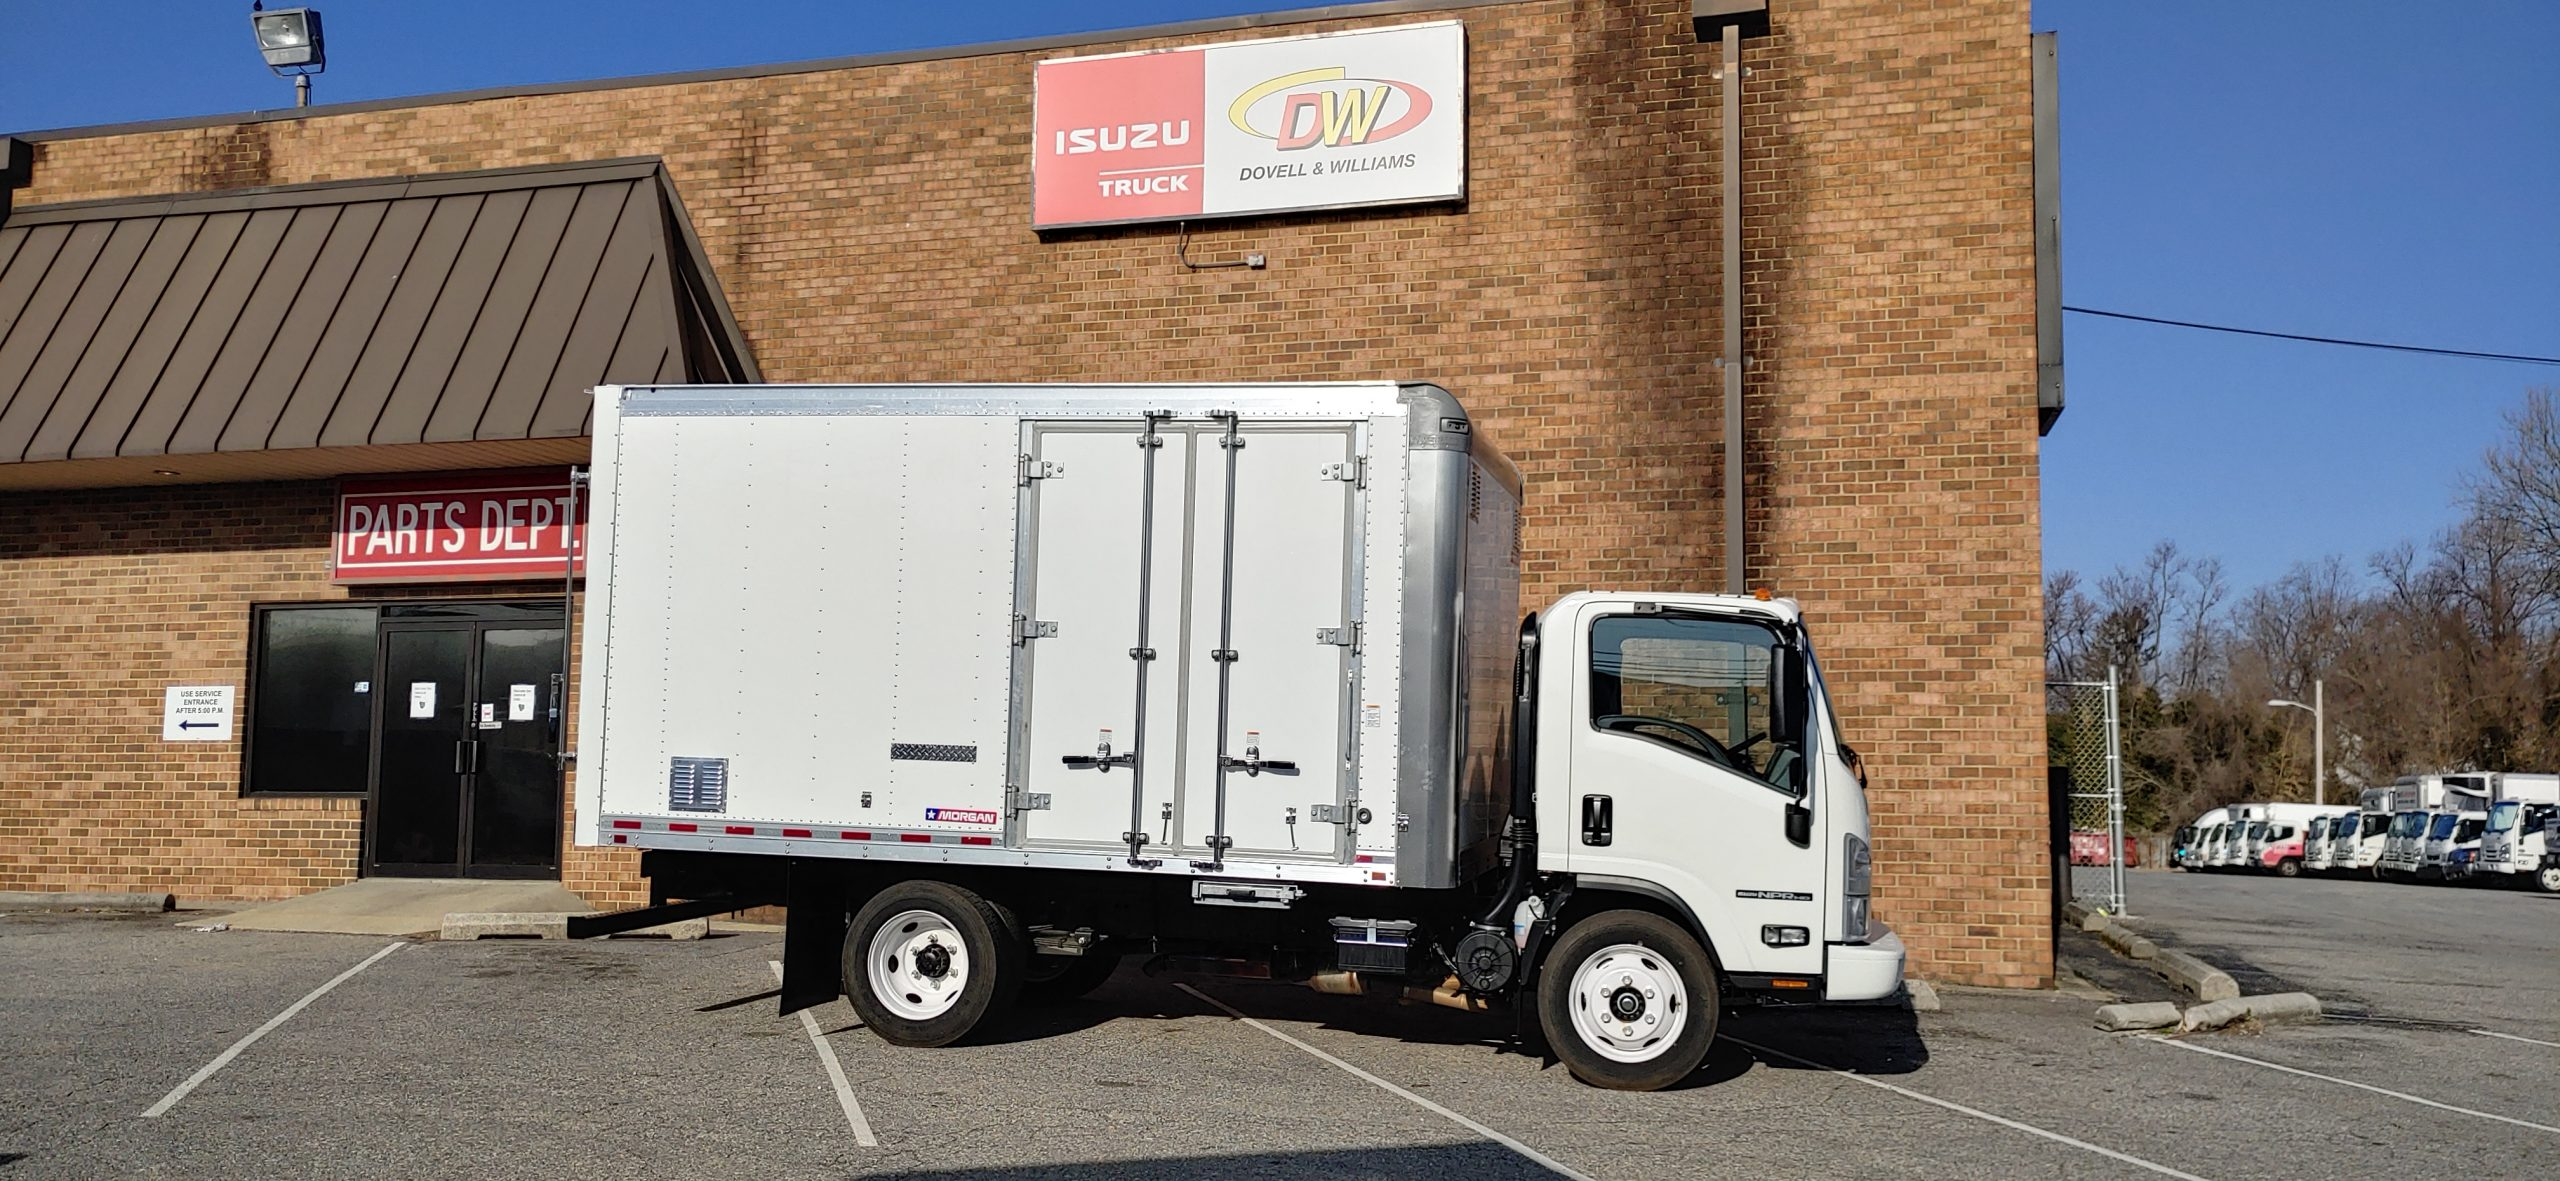 2021 NPR HD Gas Truck with Proscaper Body Pull down Ramp with Side doors 3 year Roadside Assistance 20210304_084647_HDR-scaled